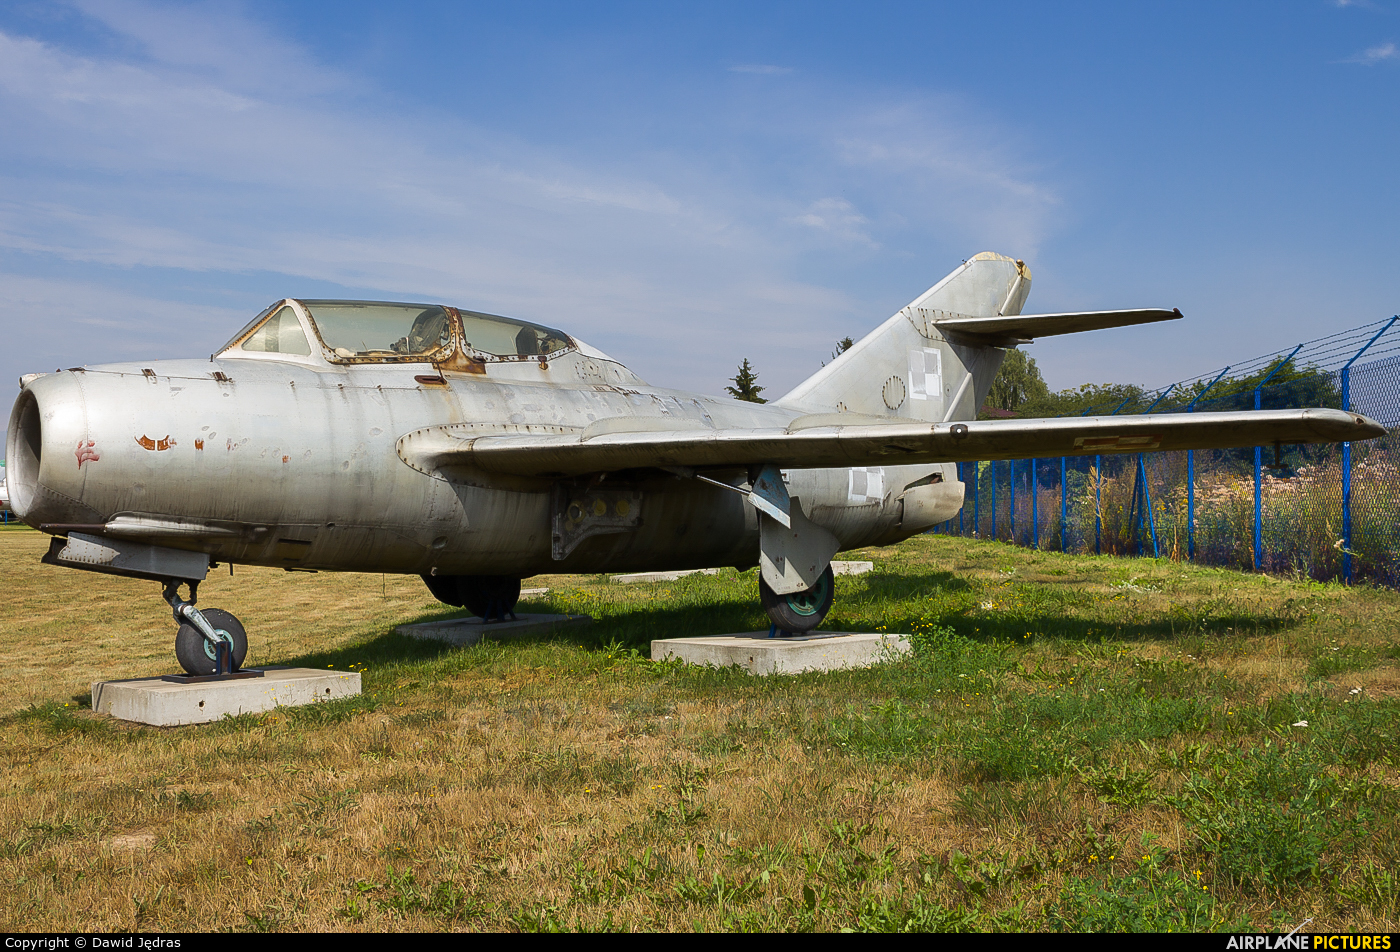 Poland - Air Force 905 aircraft at Dęblin - Museum of Polish Air Force